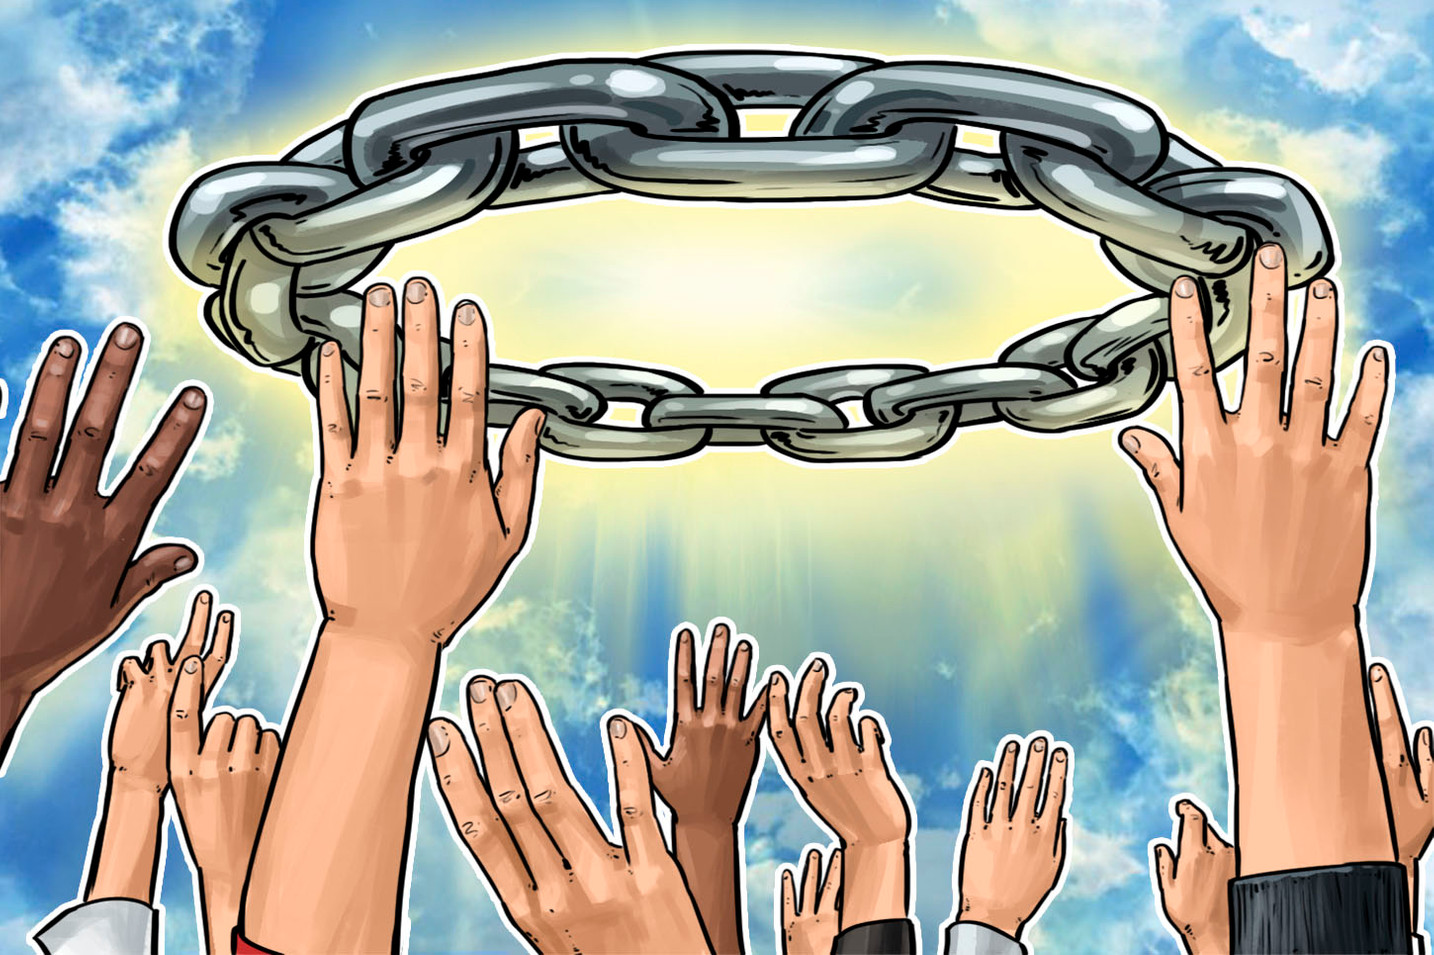 JP Morgan CIO: Blockchain Will Replace Existing Technology